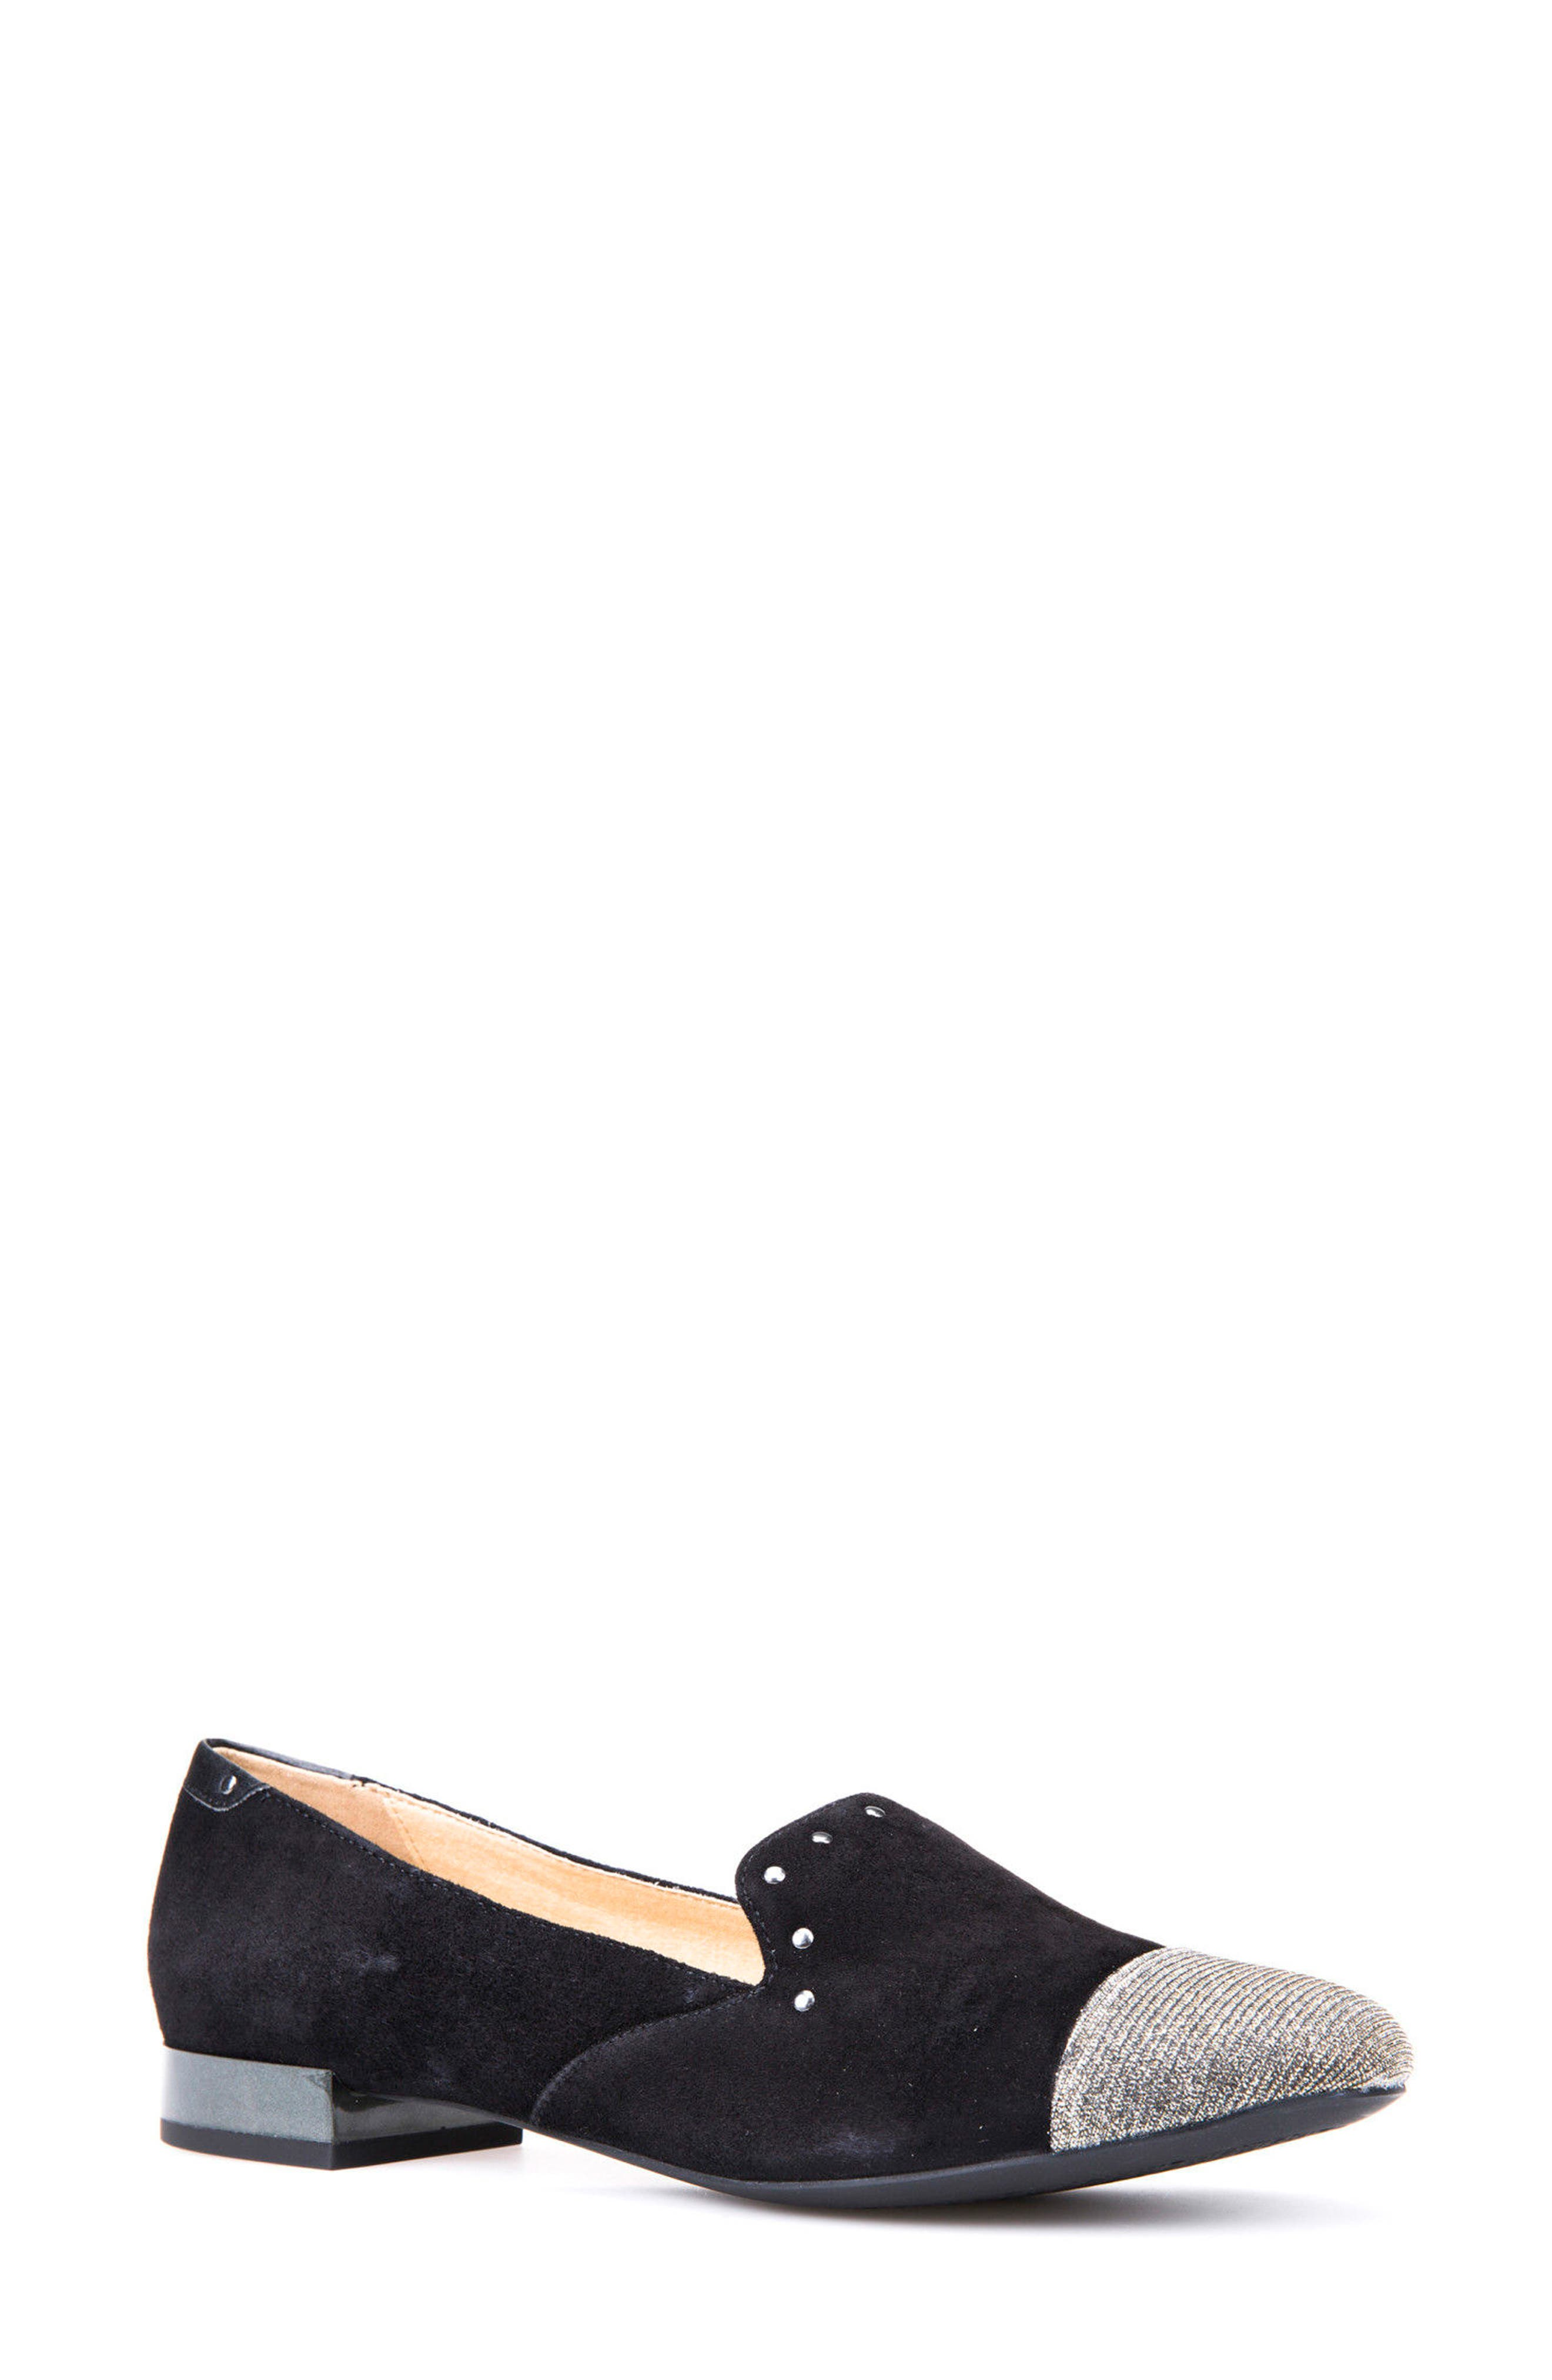 Wistrey Cap Toe Loafer,                         Main,                         color,